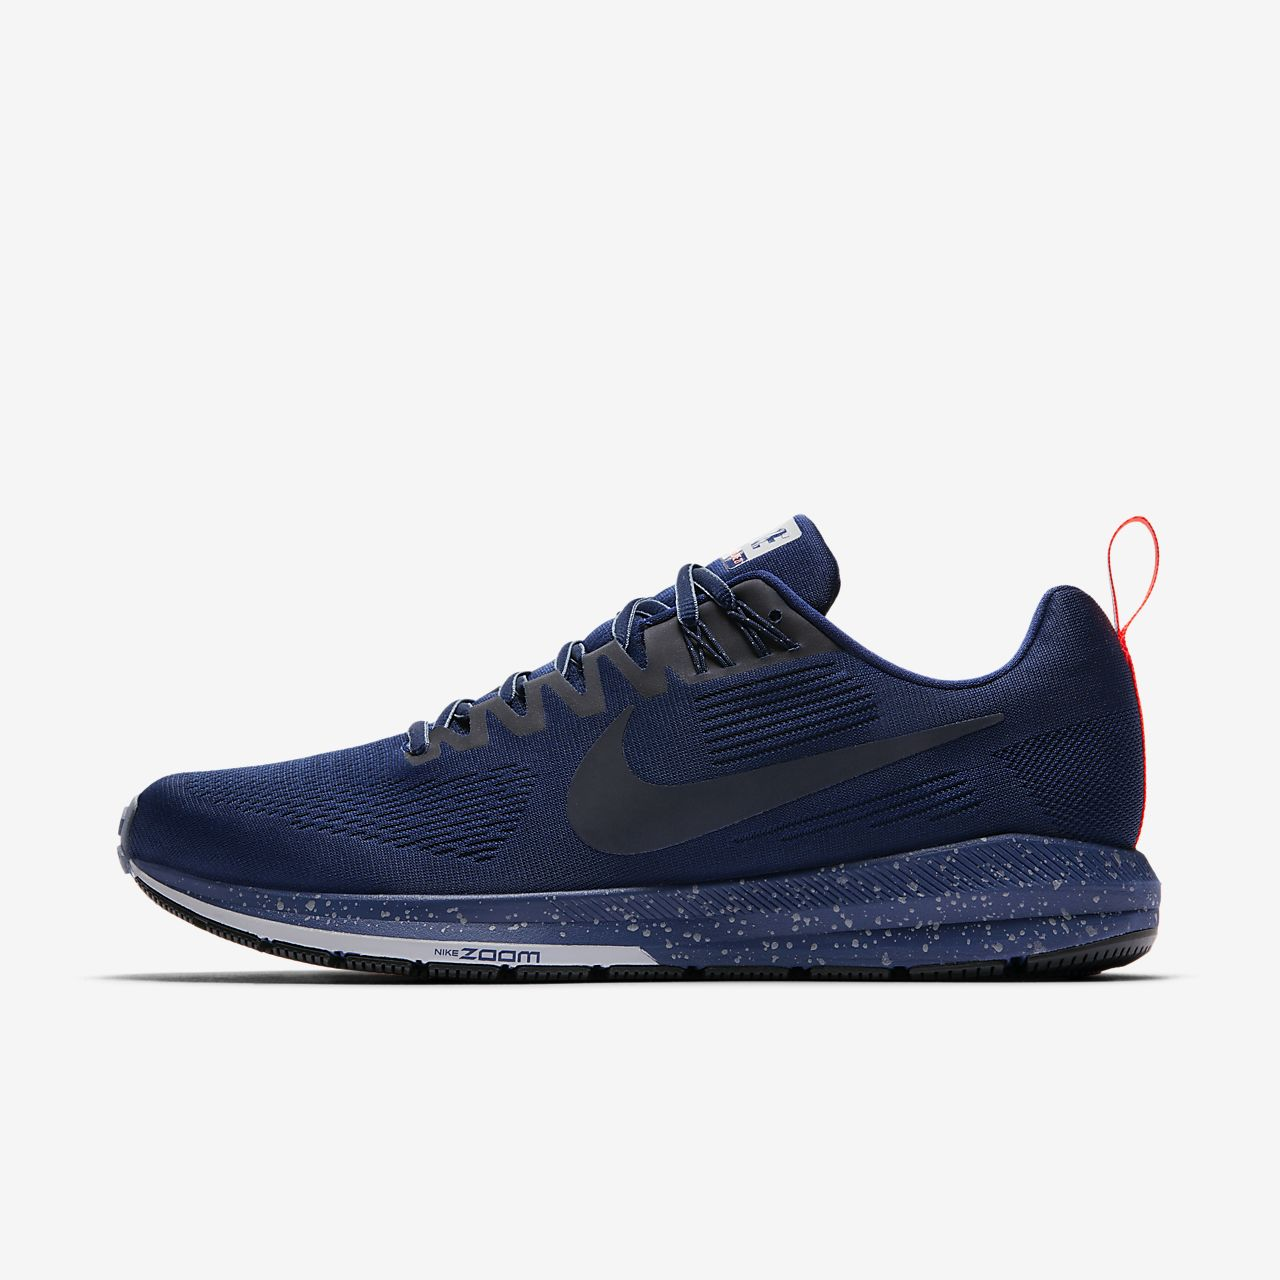 Free Shipping Sneakernews Mens Air Zoom Structure 21 Running Shoes Nike Cheap Order g8ss1